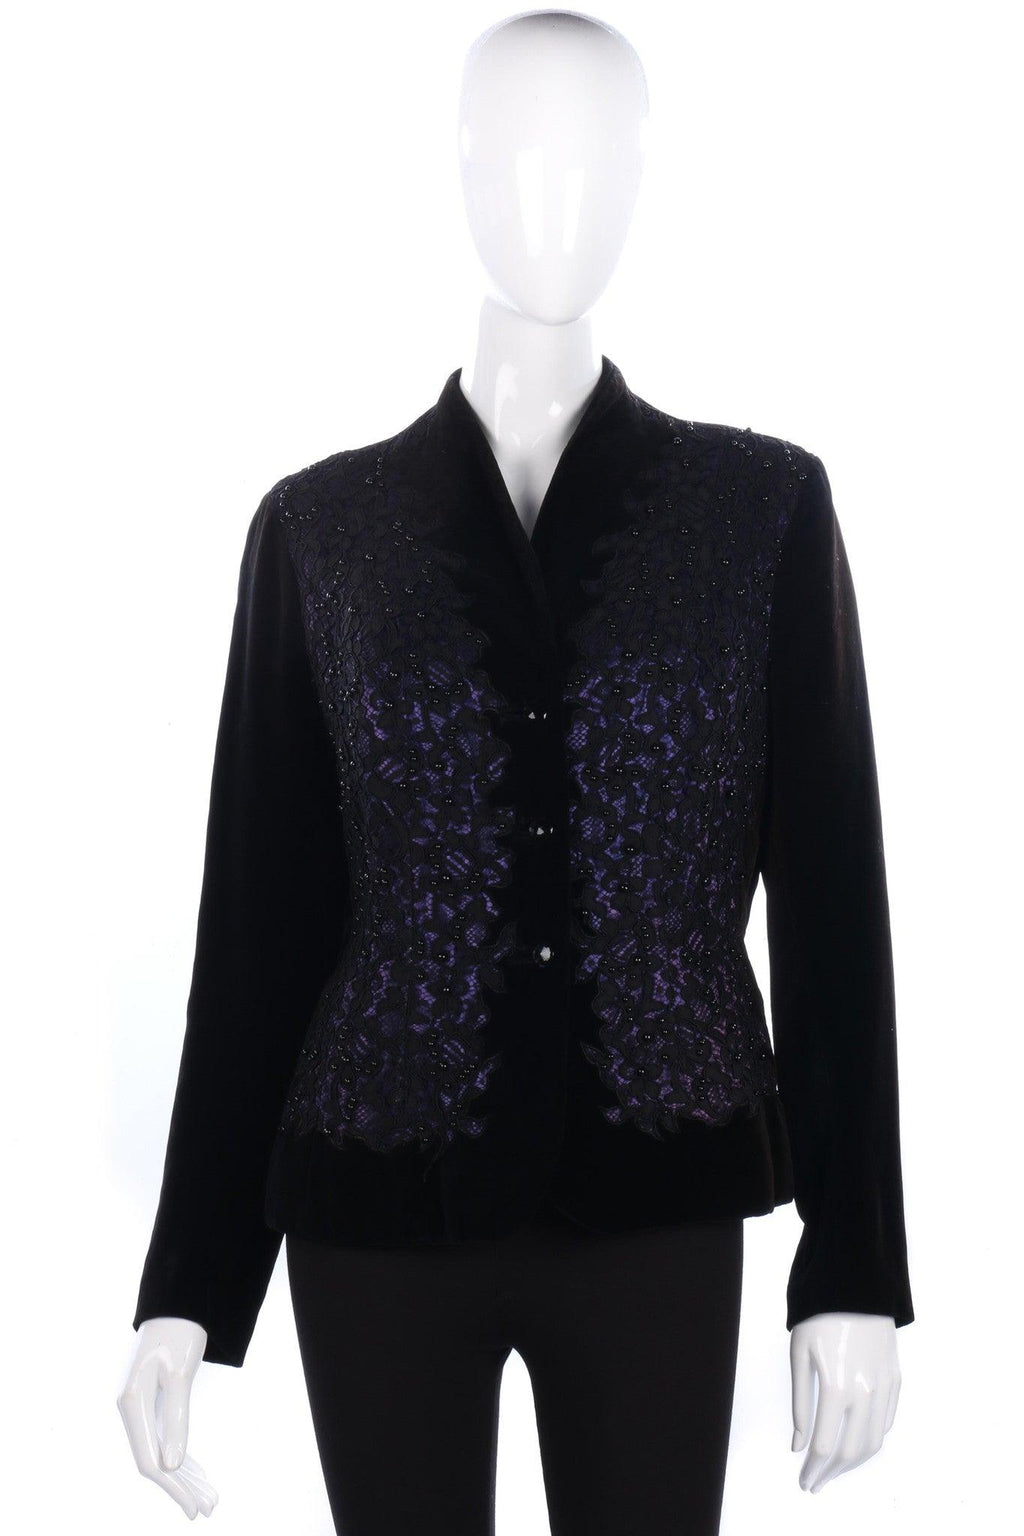 Superb Vintage Jacket Black Velvet and Lace Panels  Size 14/16